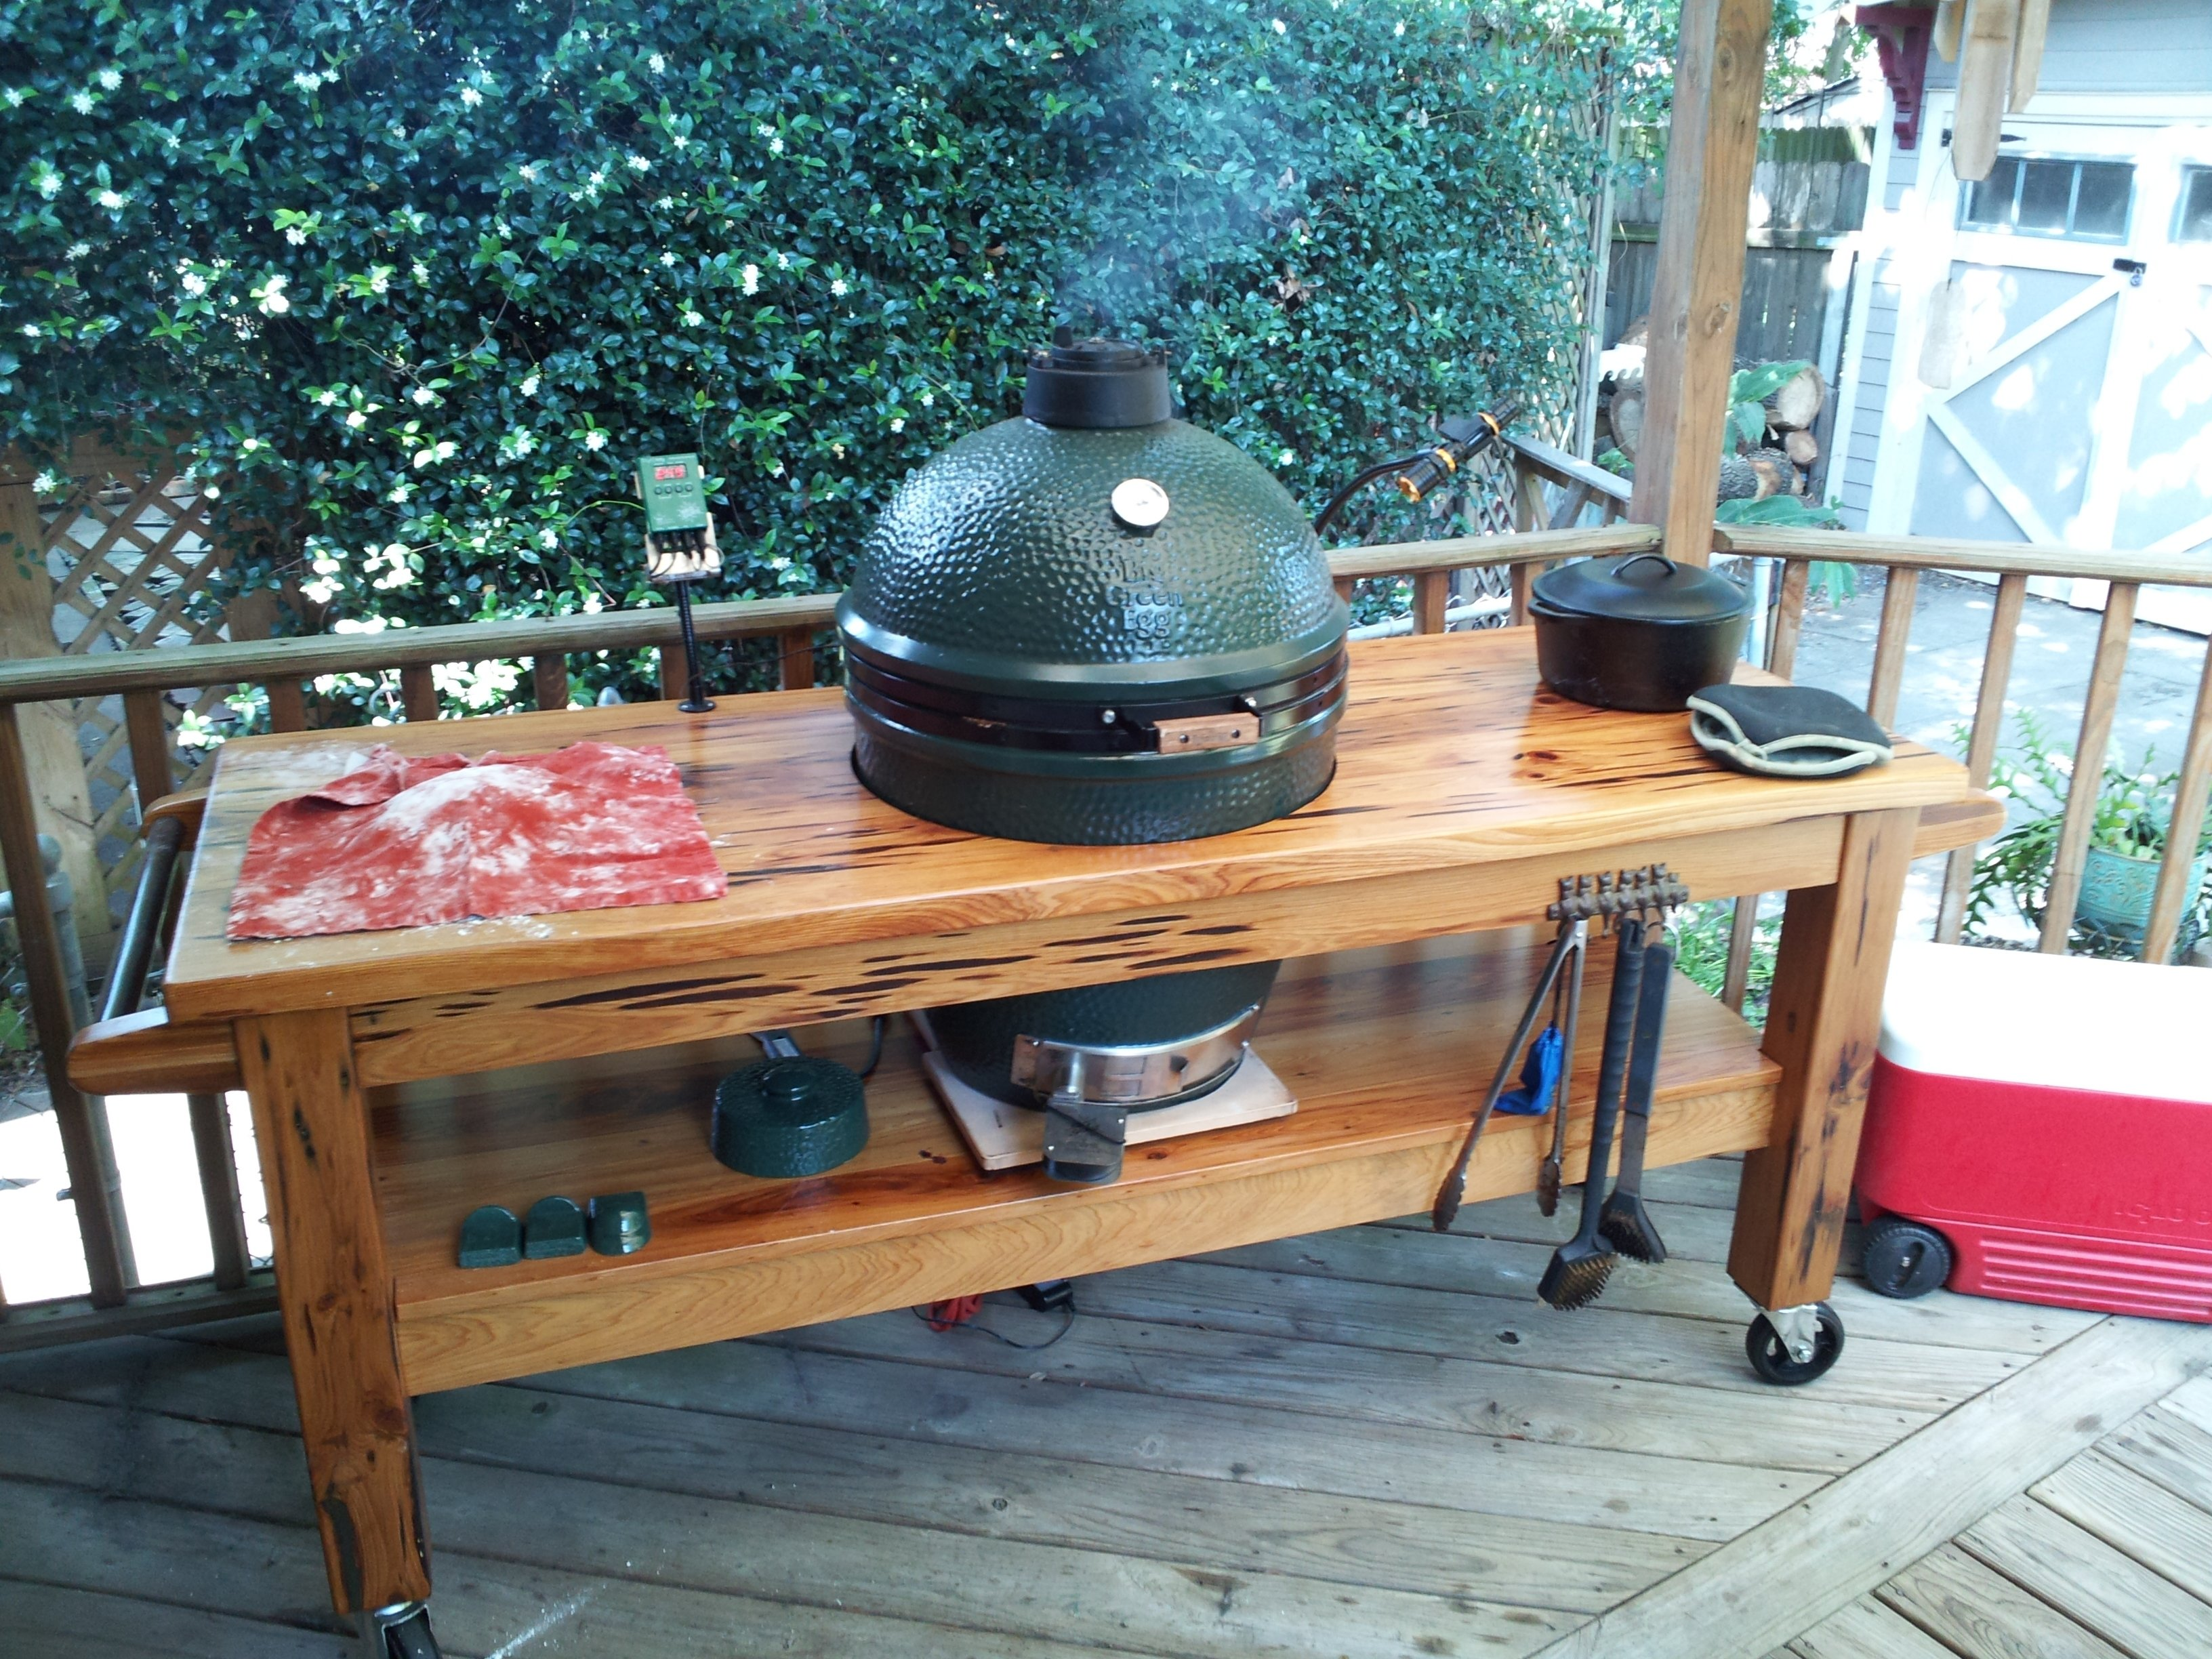 pictures of your table!! — big green egg - egghead forum - the